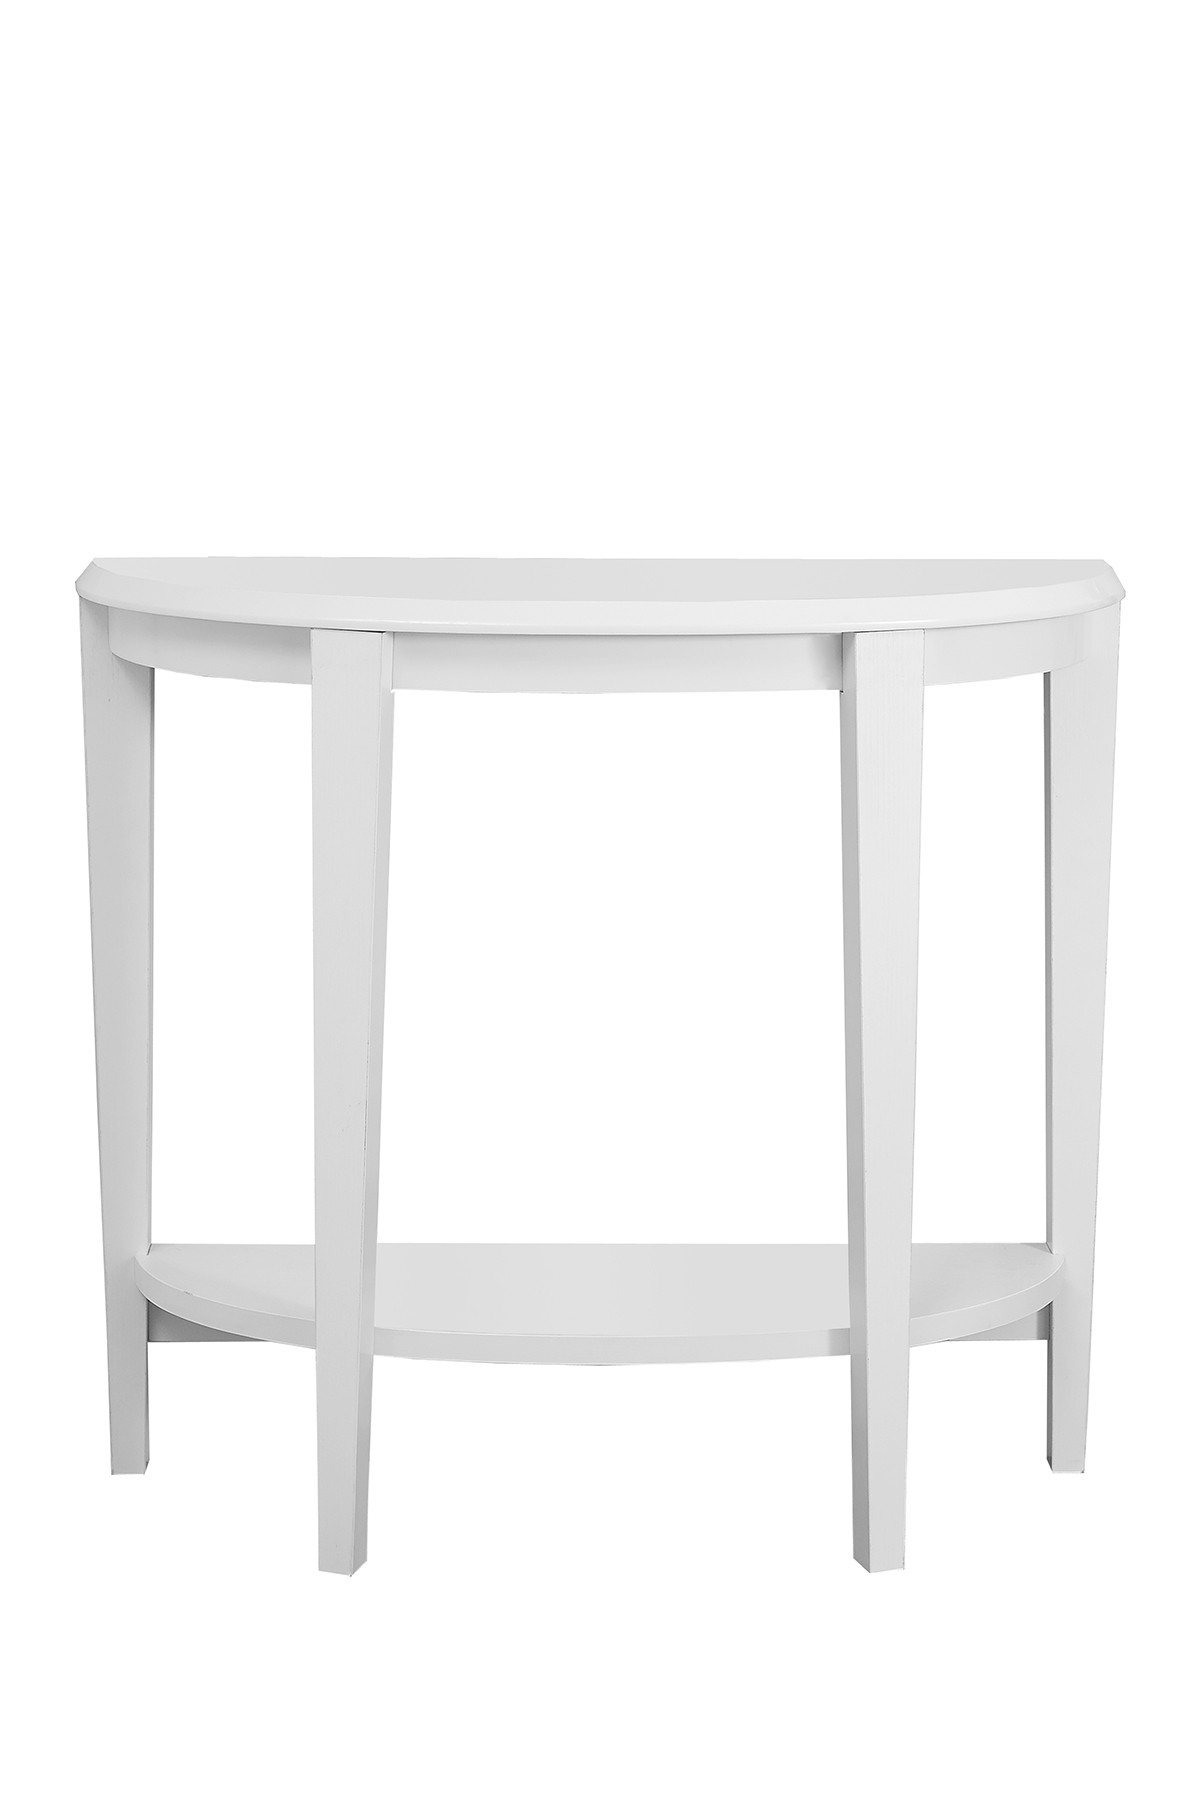 monarch specialties white hall console accent table nordstrom rack antique round coffee teal chest ceramic dark grey side modern hallway wooden stand small oak tables for living